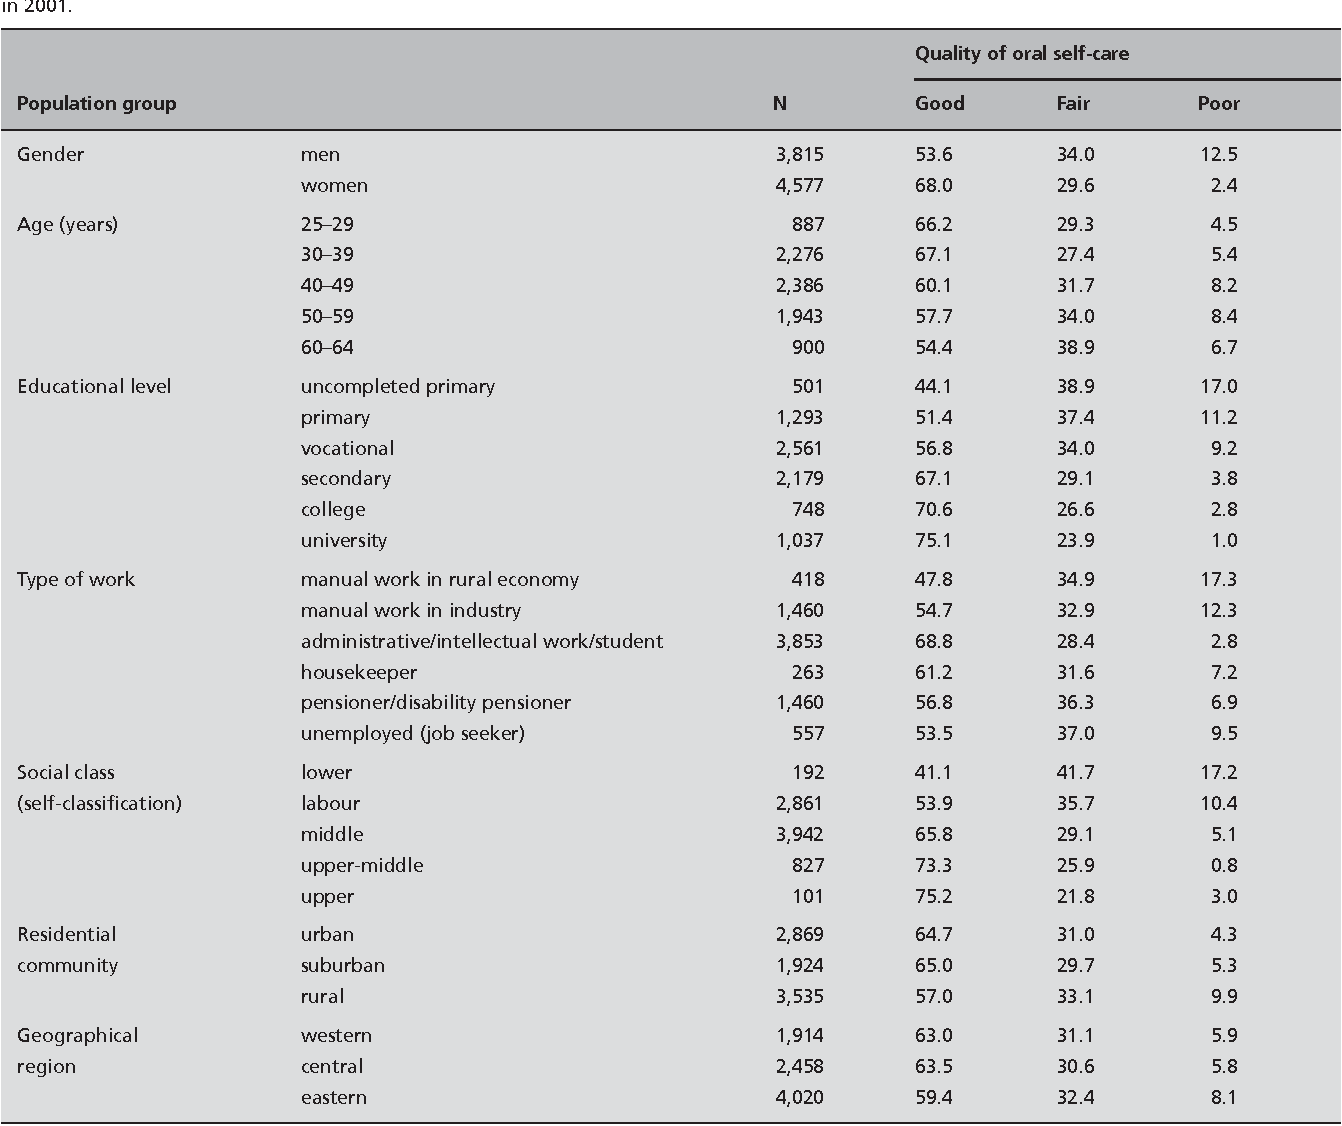 Table 4. Distribution (as %) of quality of oral self-care in different population groups in 8,392 participants of the health behaviour survey in Slovenia in 2001.